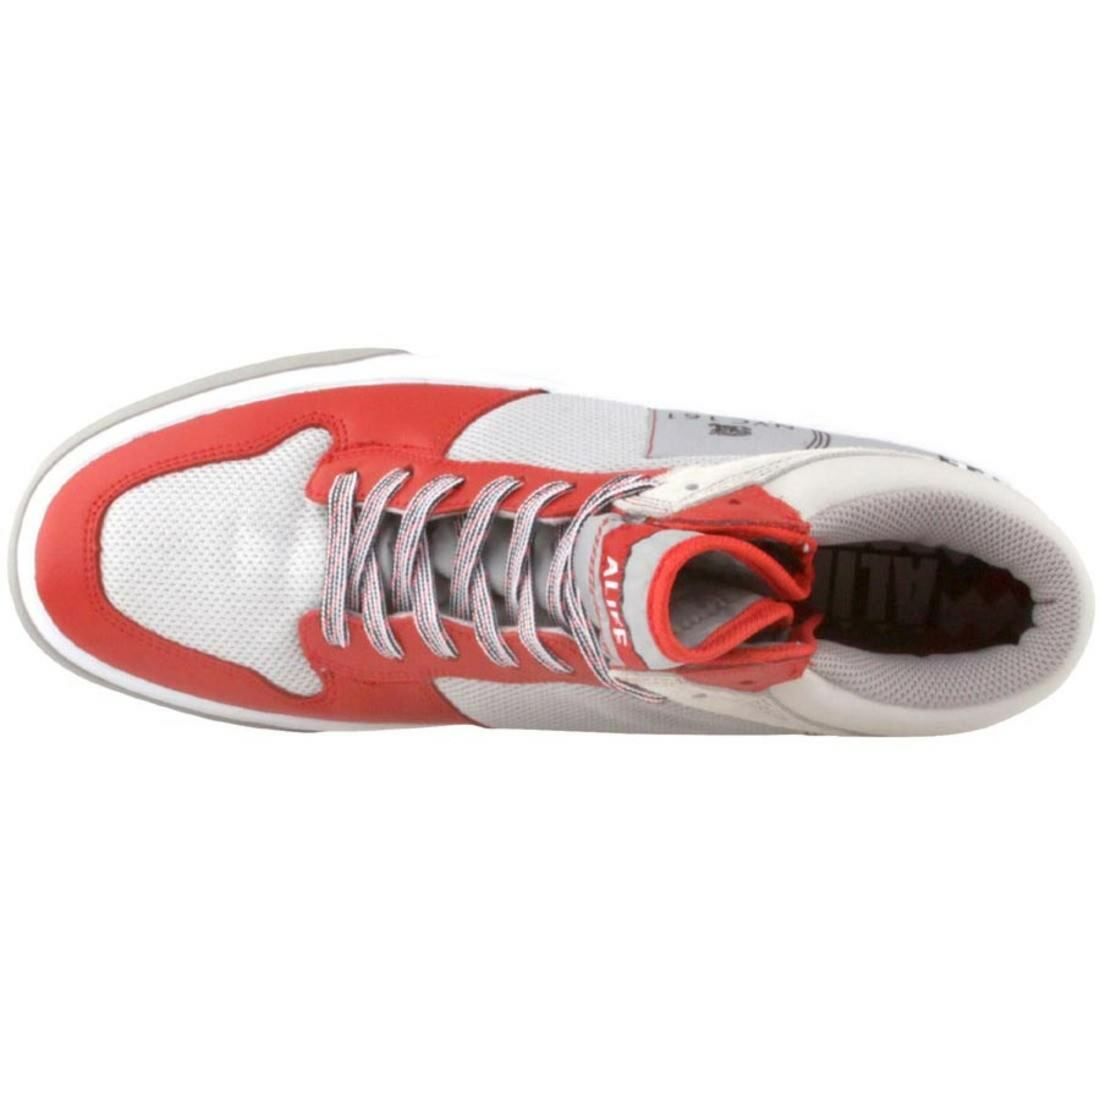 $119.99 America ALIFE Everybody High America $119.99 - Leather (red) S92EVHI2 f825cc